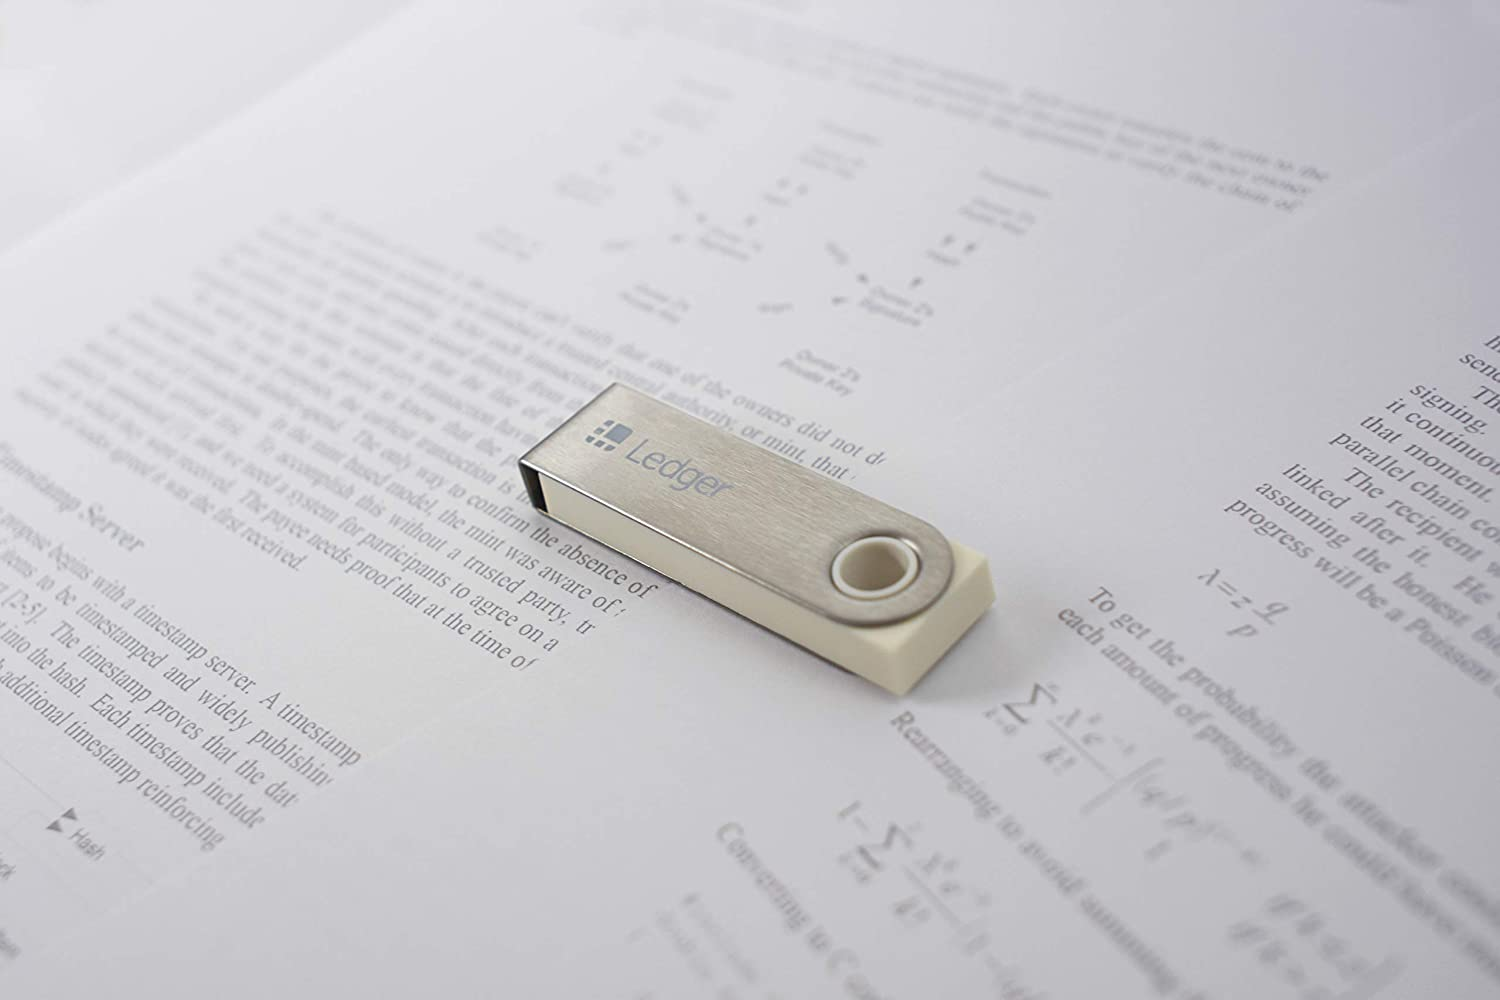 Ledger Nano S - V1.4 - White Paper Limited Edition - Monedero Hardware de criptomonedas - Bitcoin, Ethereum, XRC, Altcoins y Tokens ERC